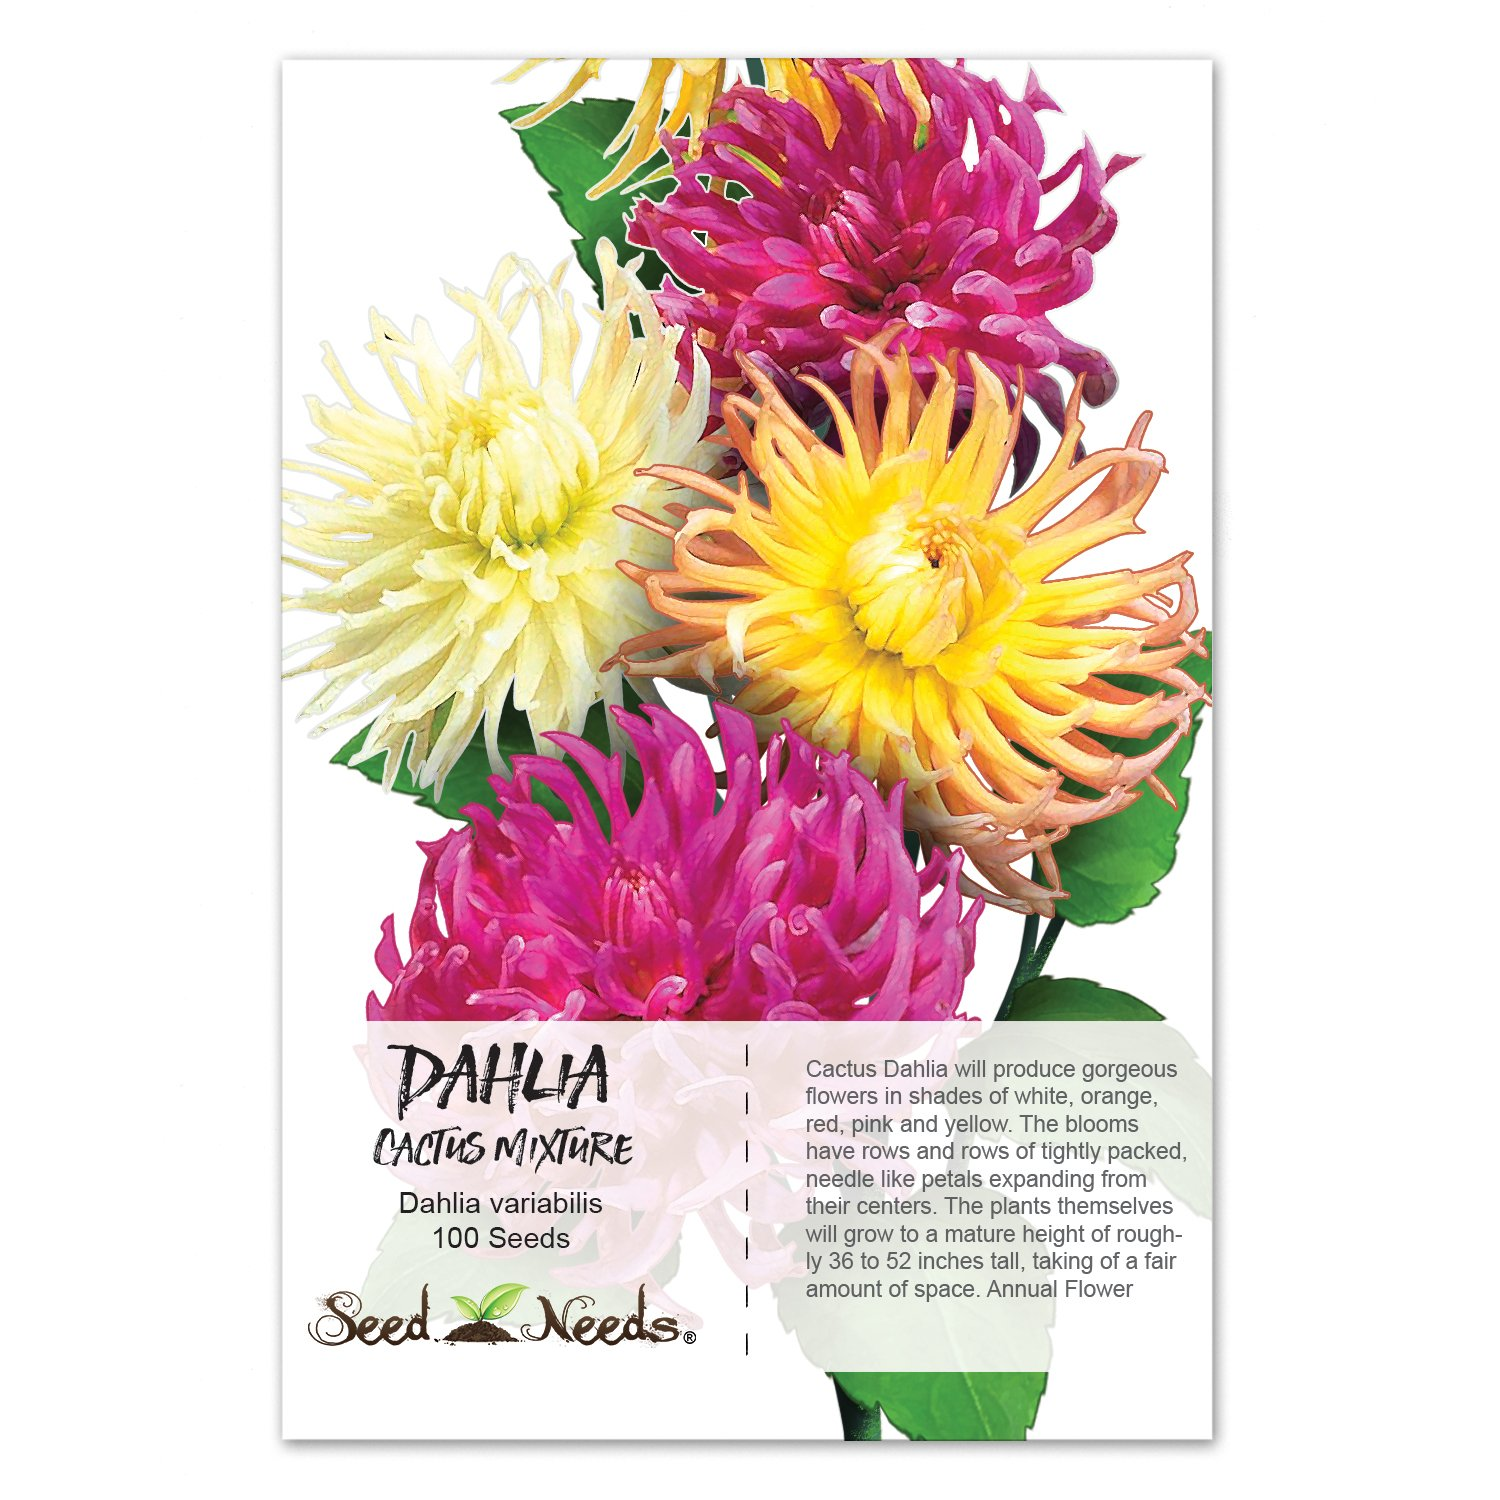 Amazon package of 100 seeds cactus mixed dahlia dahlia amazon package of 100 seeds cactus mixed dahlia dahlia variabilis non gmo seeds by seed needs dahlia plants garden outdoor izmirmasajfo